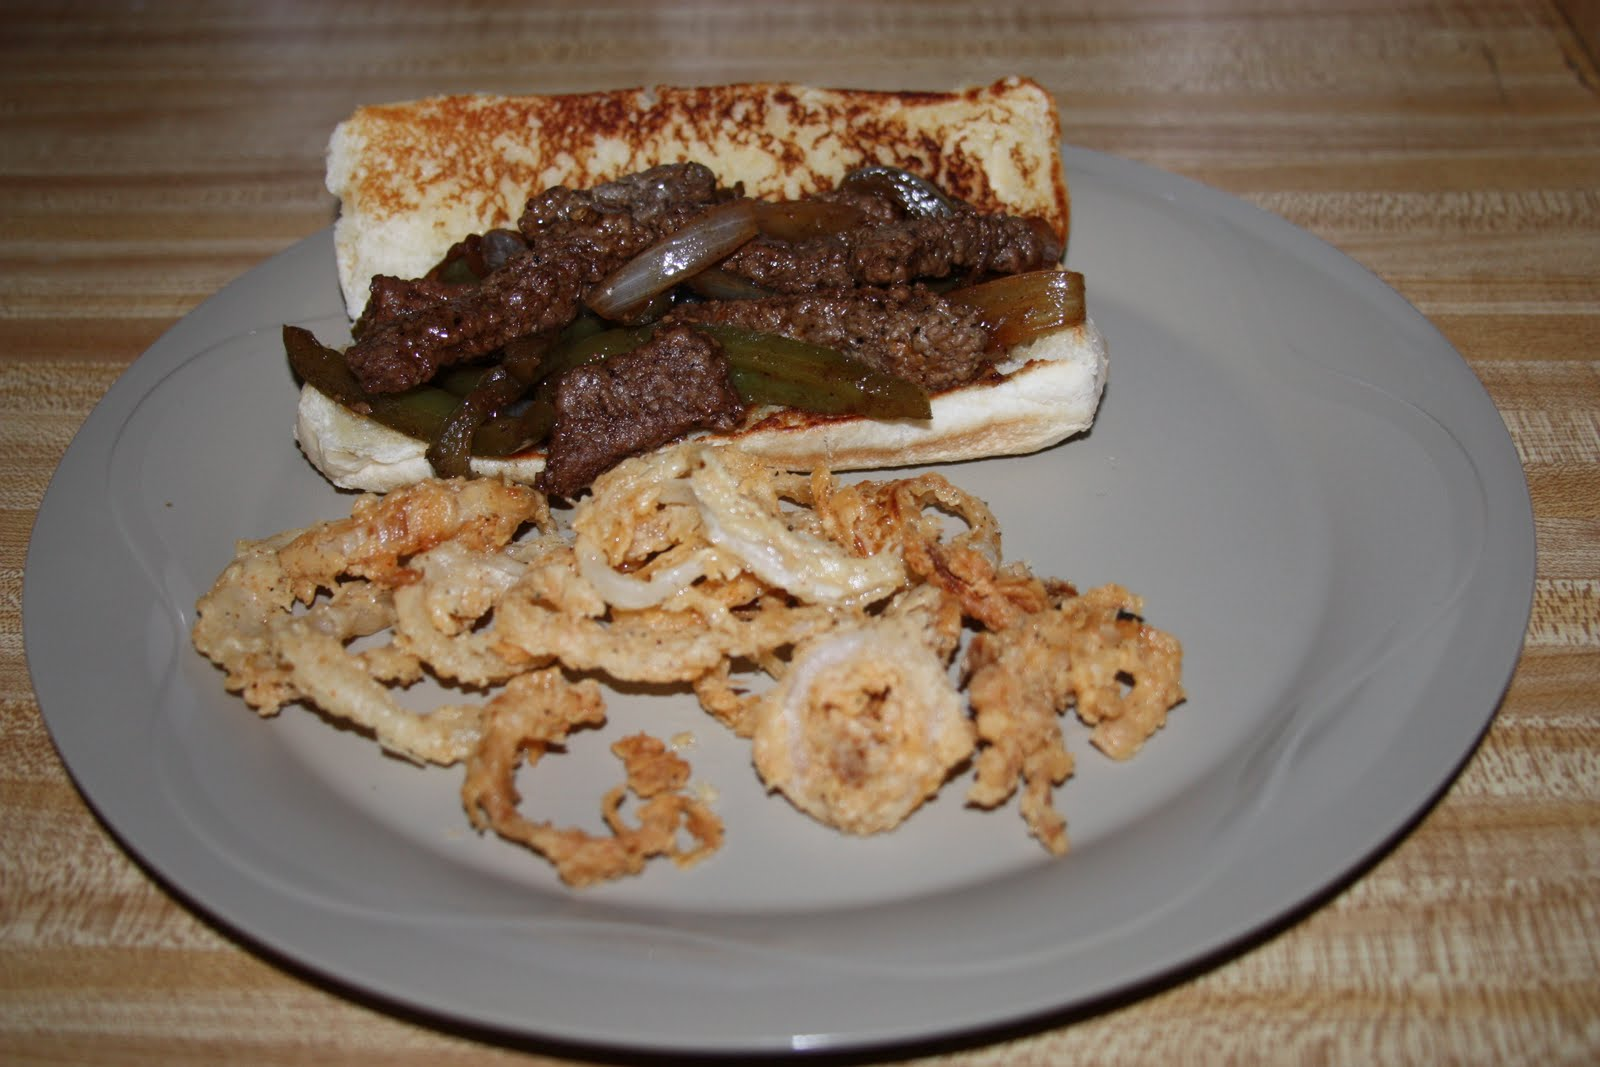 ... : Pioneer Woman - Marlboro Man's Favorite Sandwich & Onion Strings